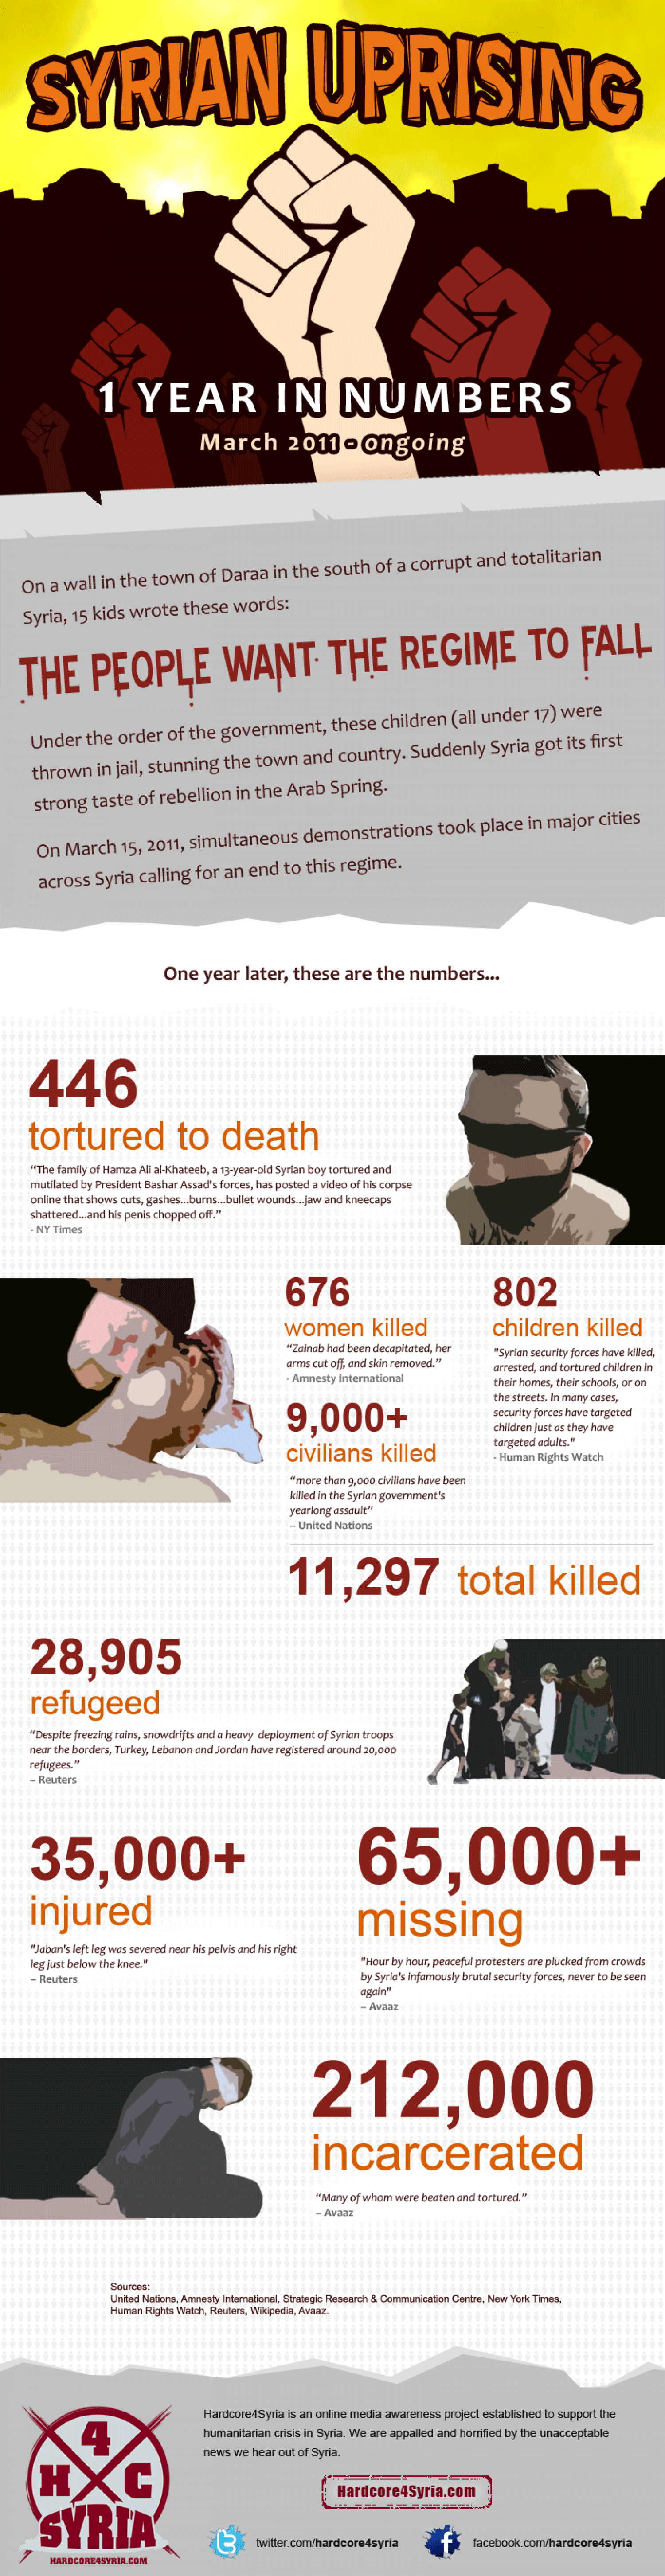 Syrian Uprising - 1 Year In Numbers Infographic